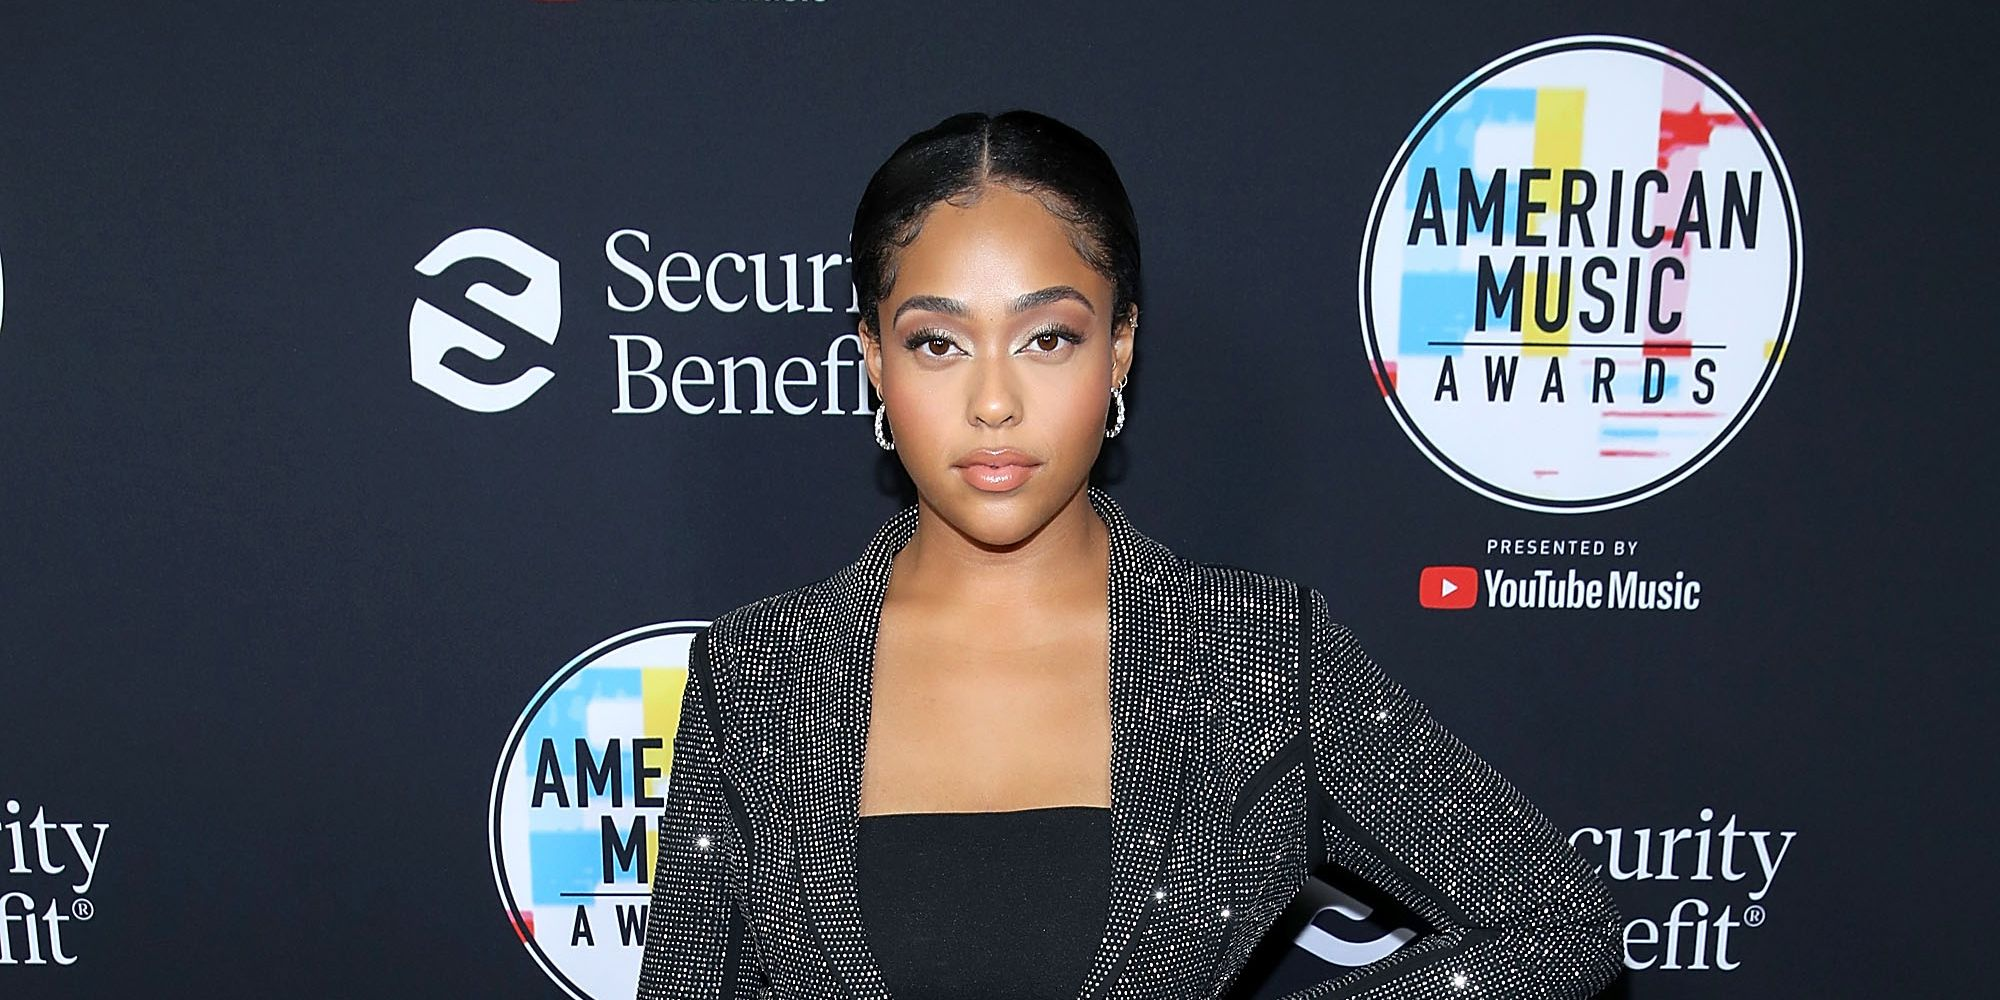 jordyn woods confirms khloe kardashian tristan thompson cheating